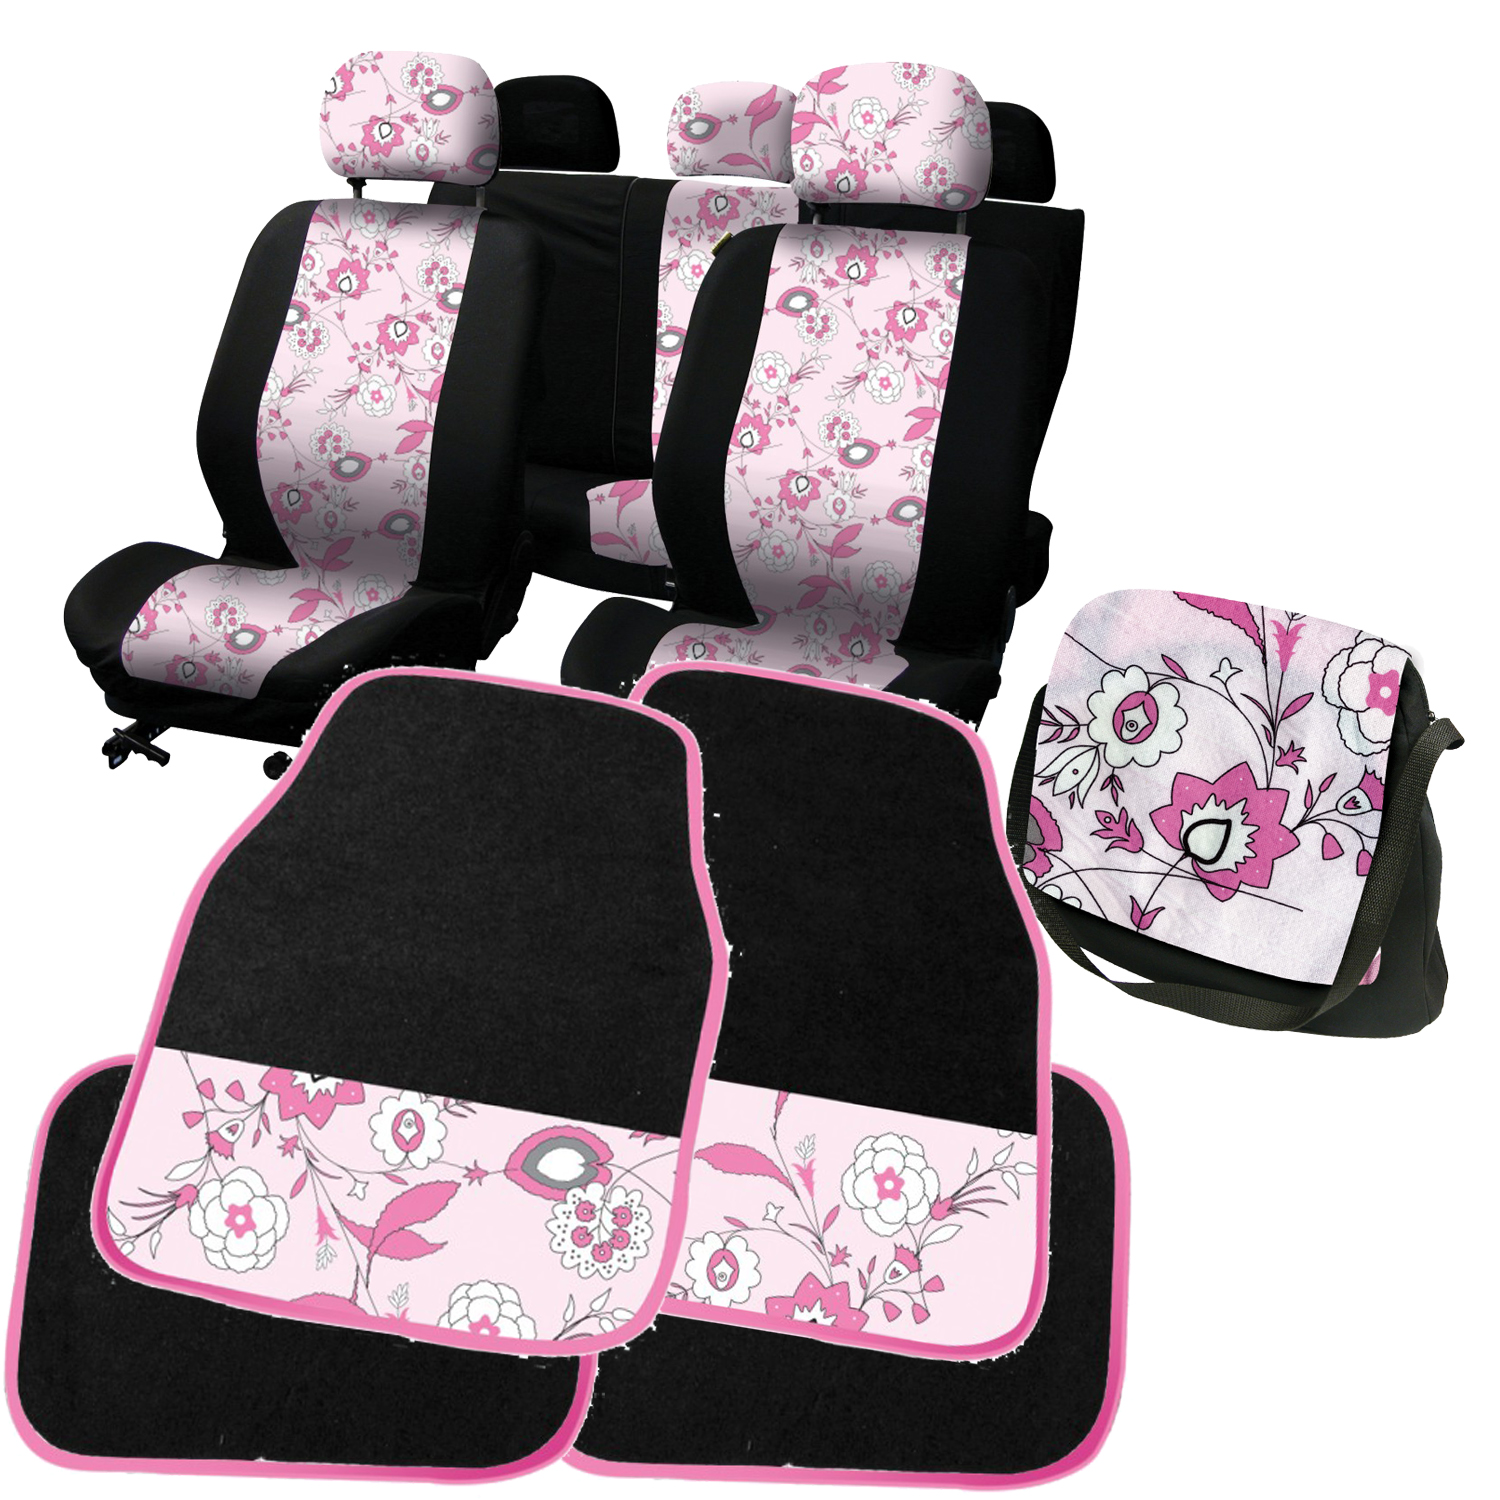 Carpoint Pink Flower Car Accessory Set Seat Covers Floor